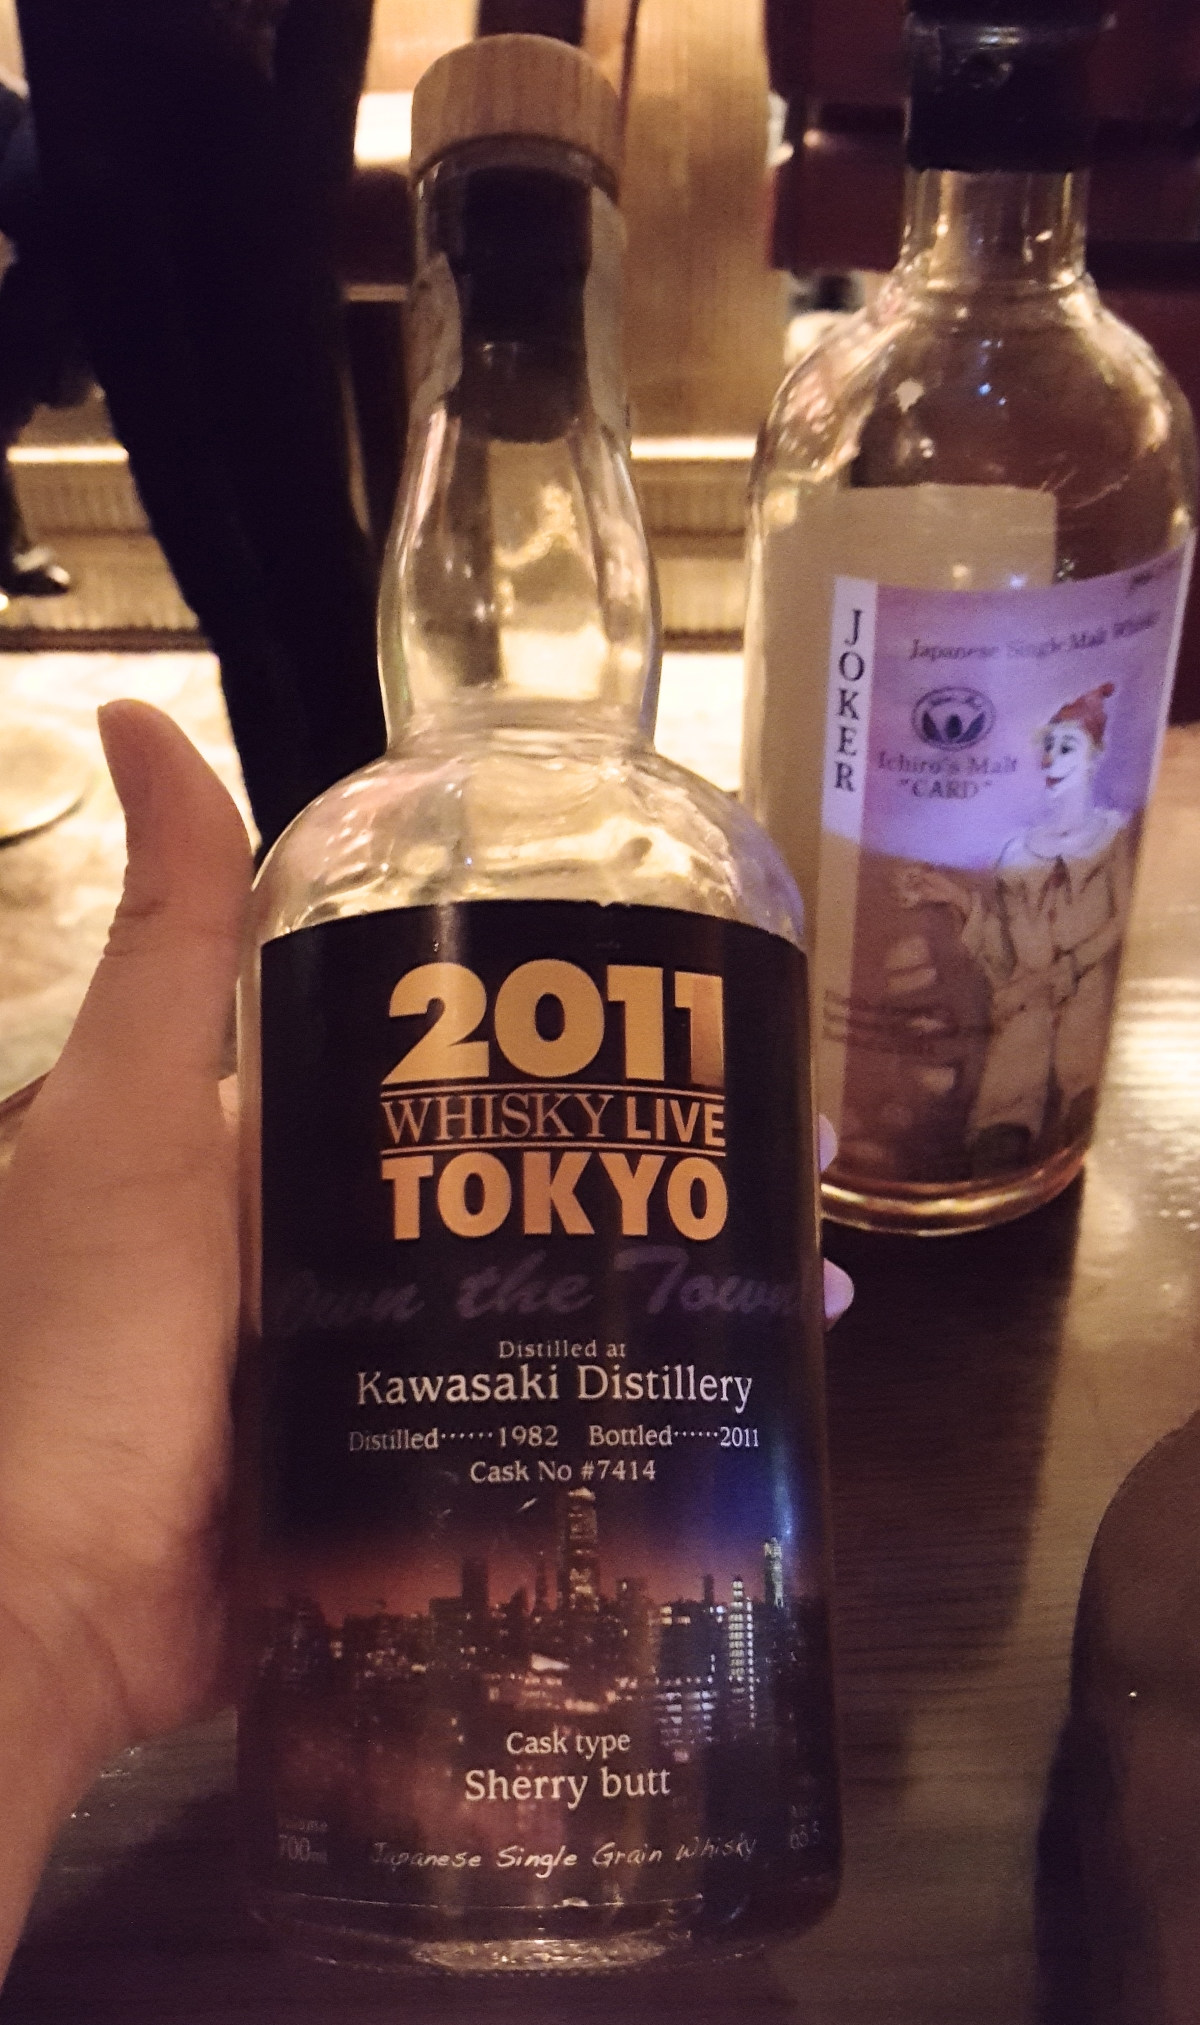 Review: Kawasaki 29 year old sherry butt #7414, Whisky Live Tokyo 2011